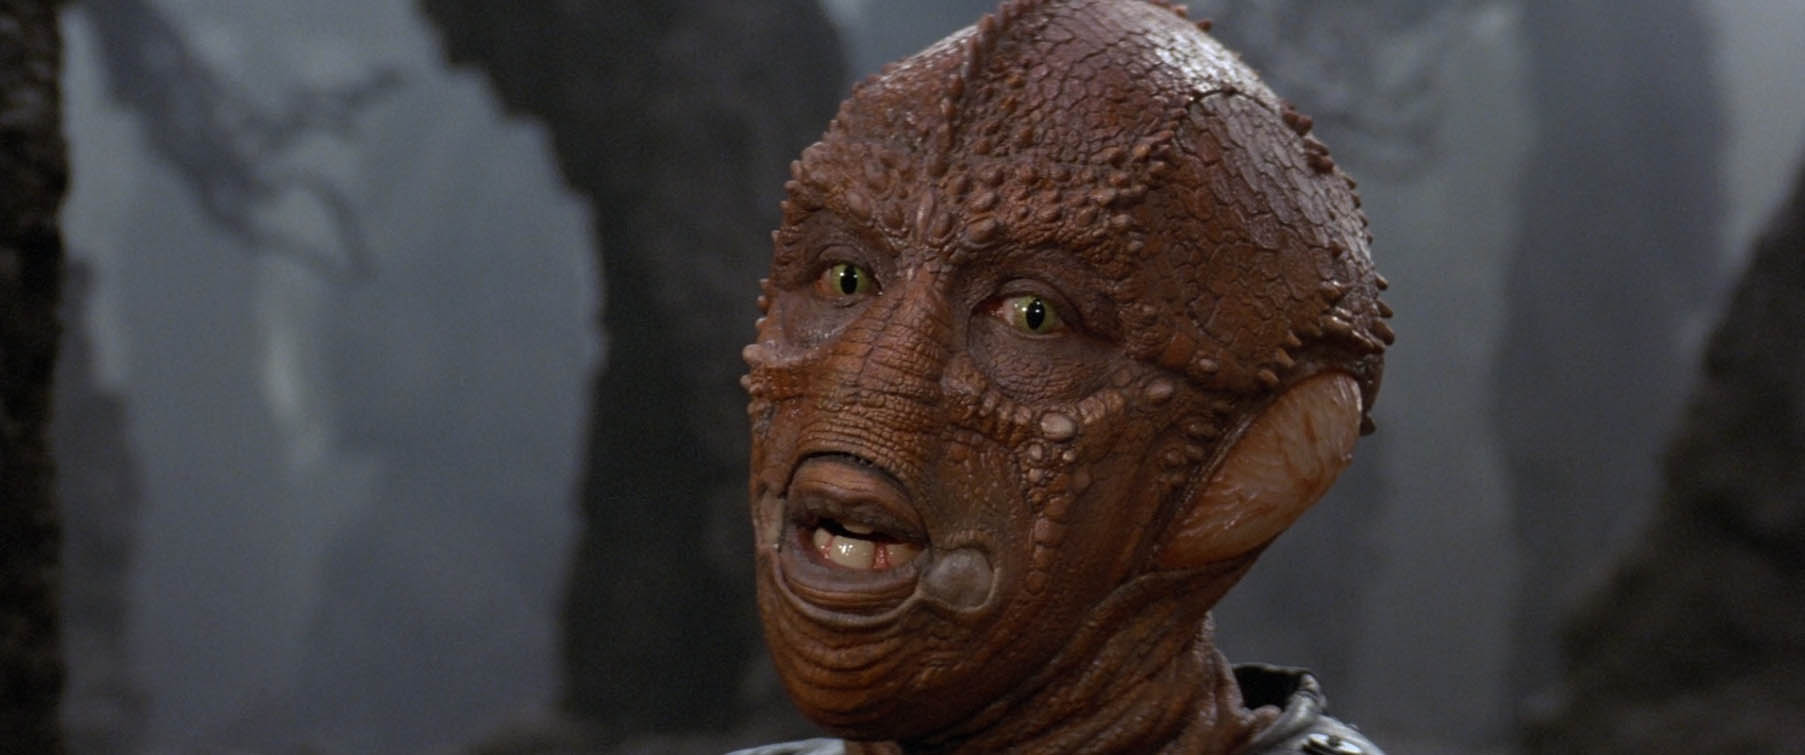 Enemy Mine 1985 Alien face